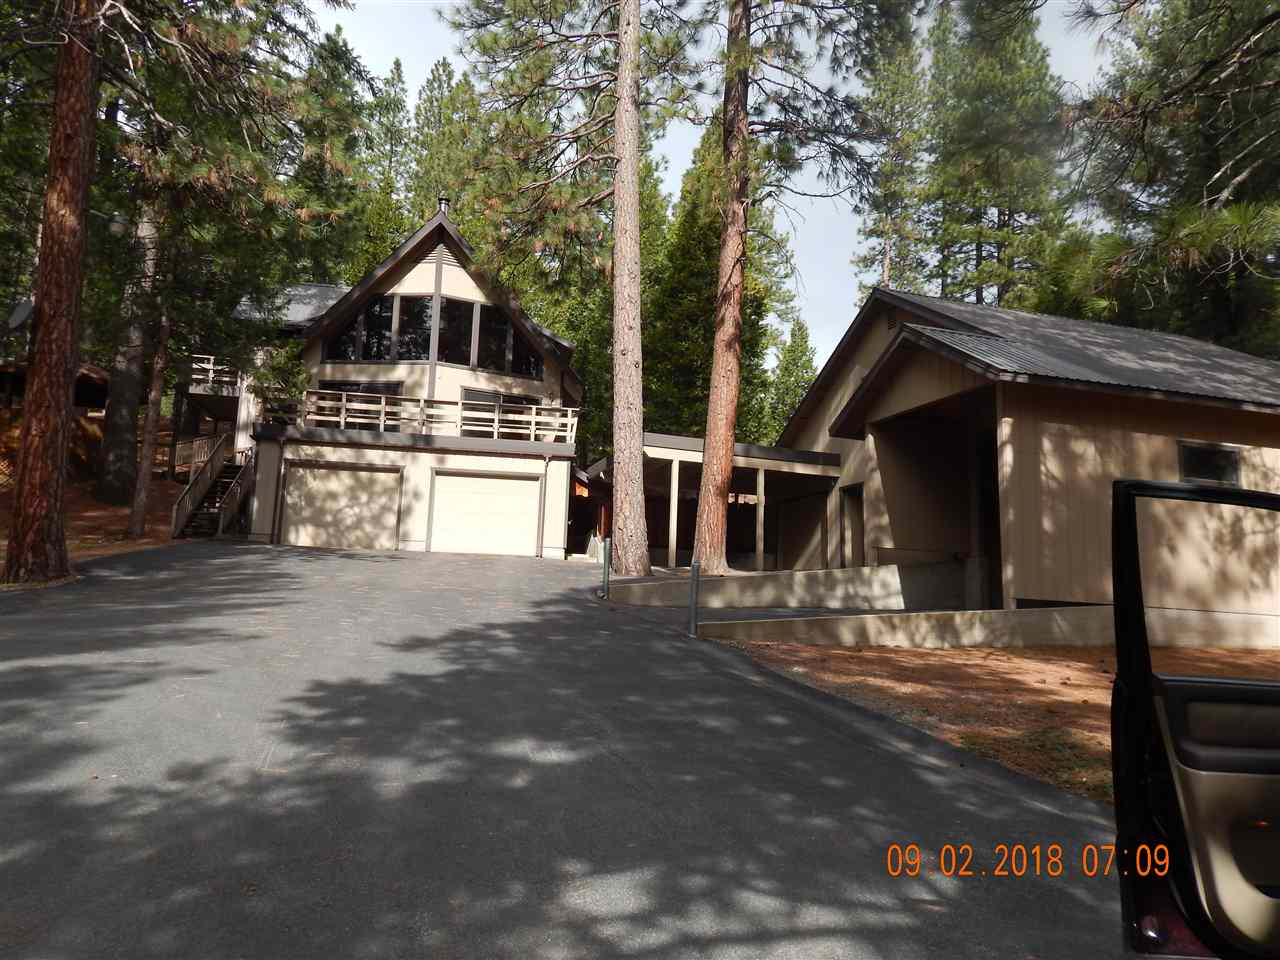 Single Family Home for Active at 69355 Mohawk Vista Drive 69355 Mohawk Vista Drive Blairsden, California 96103 United States